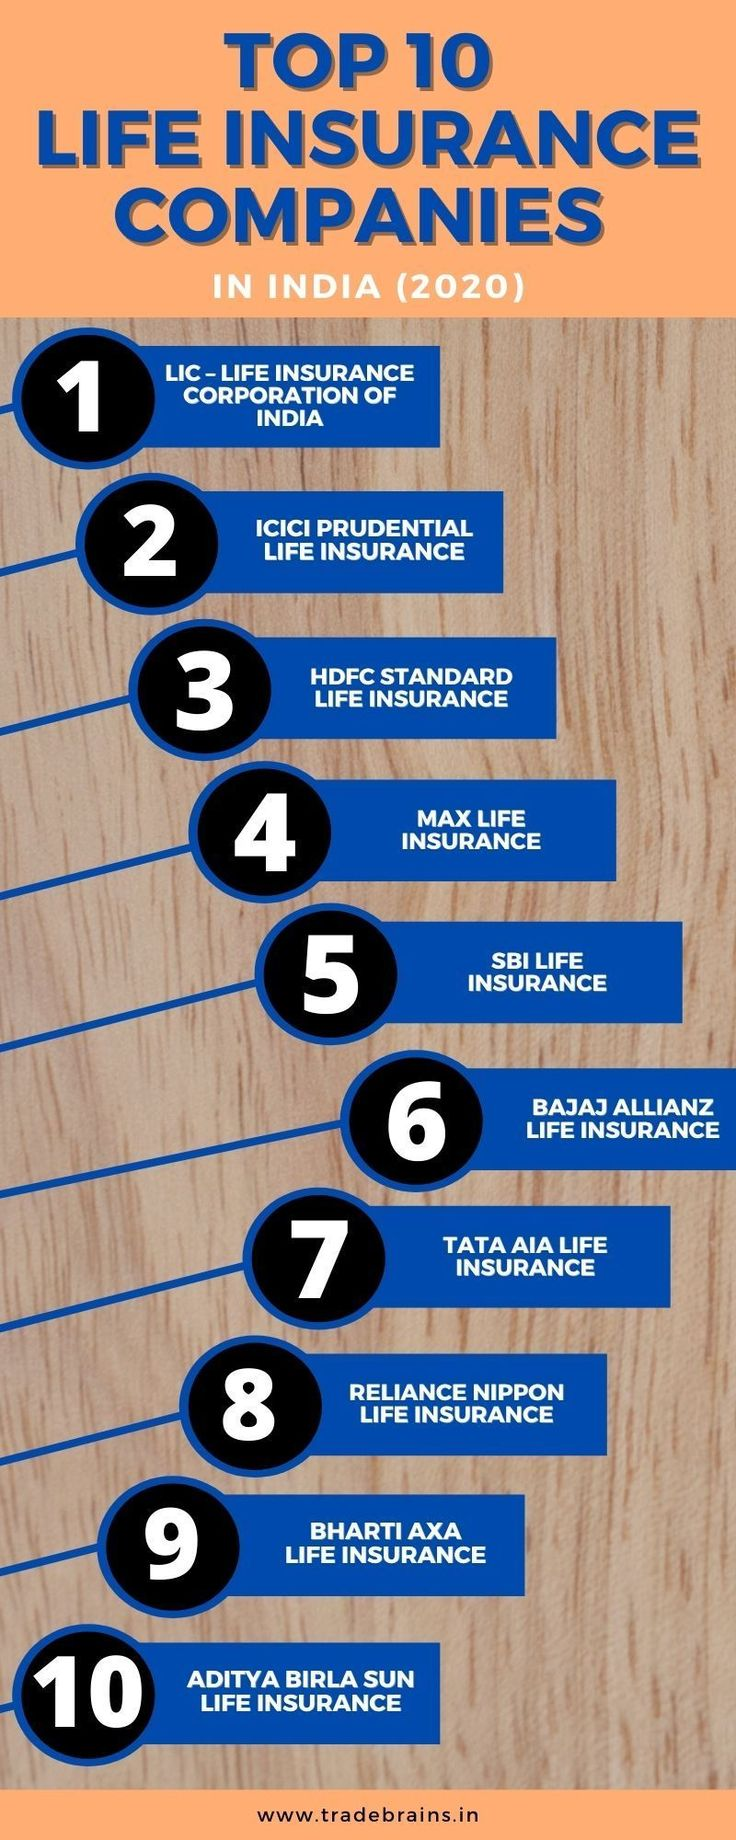 Top 10 Life Insurance Companies in India (2020) in 2020